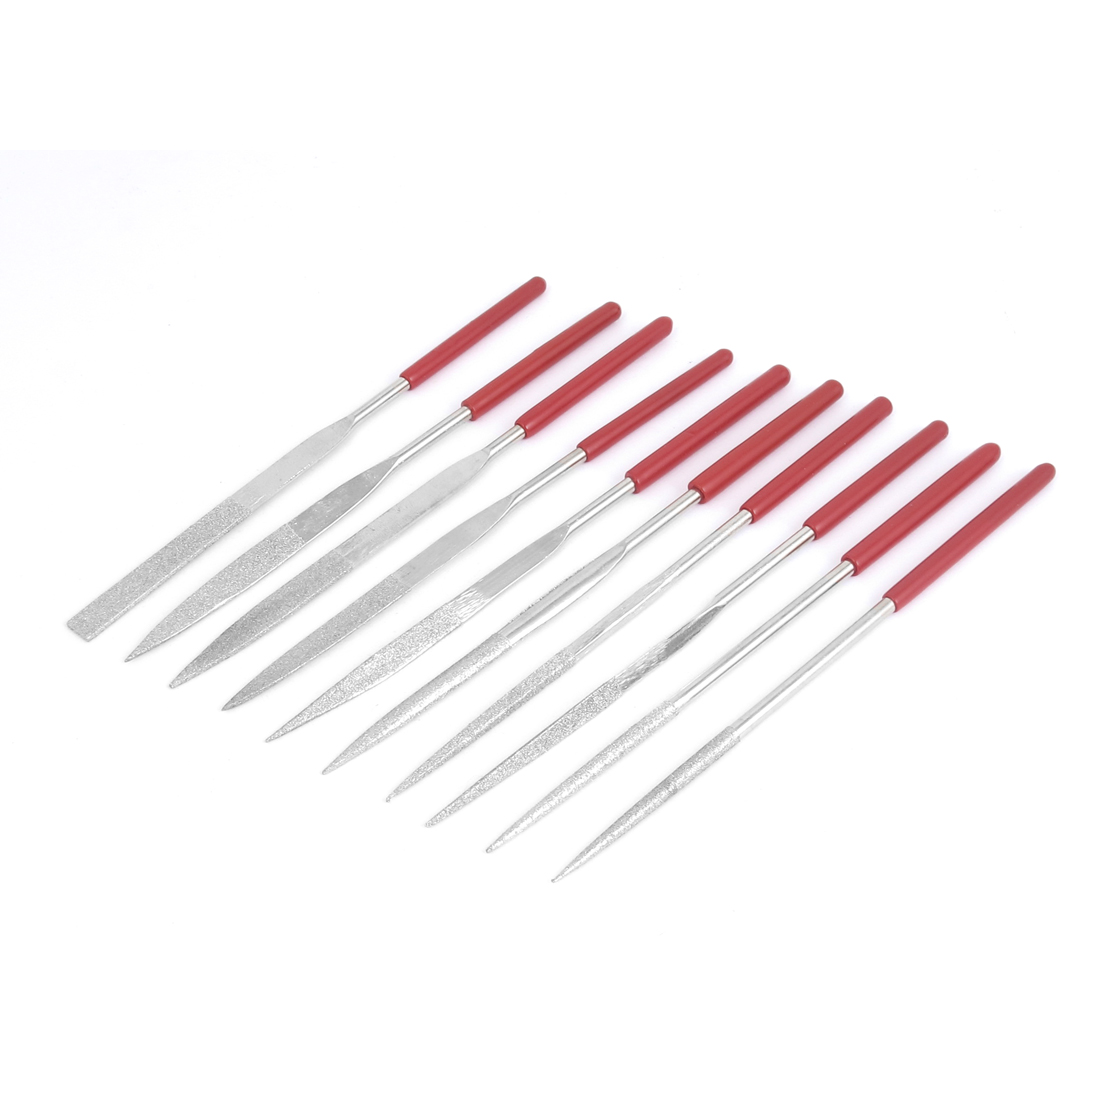 Red Shank Jeweler Ceramic Tool Woodwork Micro Diamond Metal Needle Files Set 160mm Length 10pcs